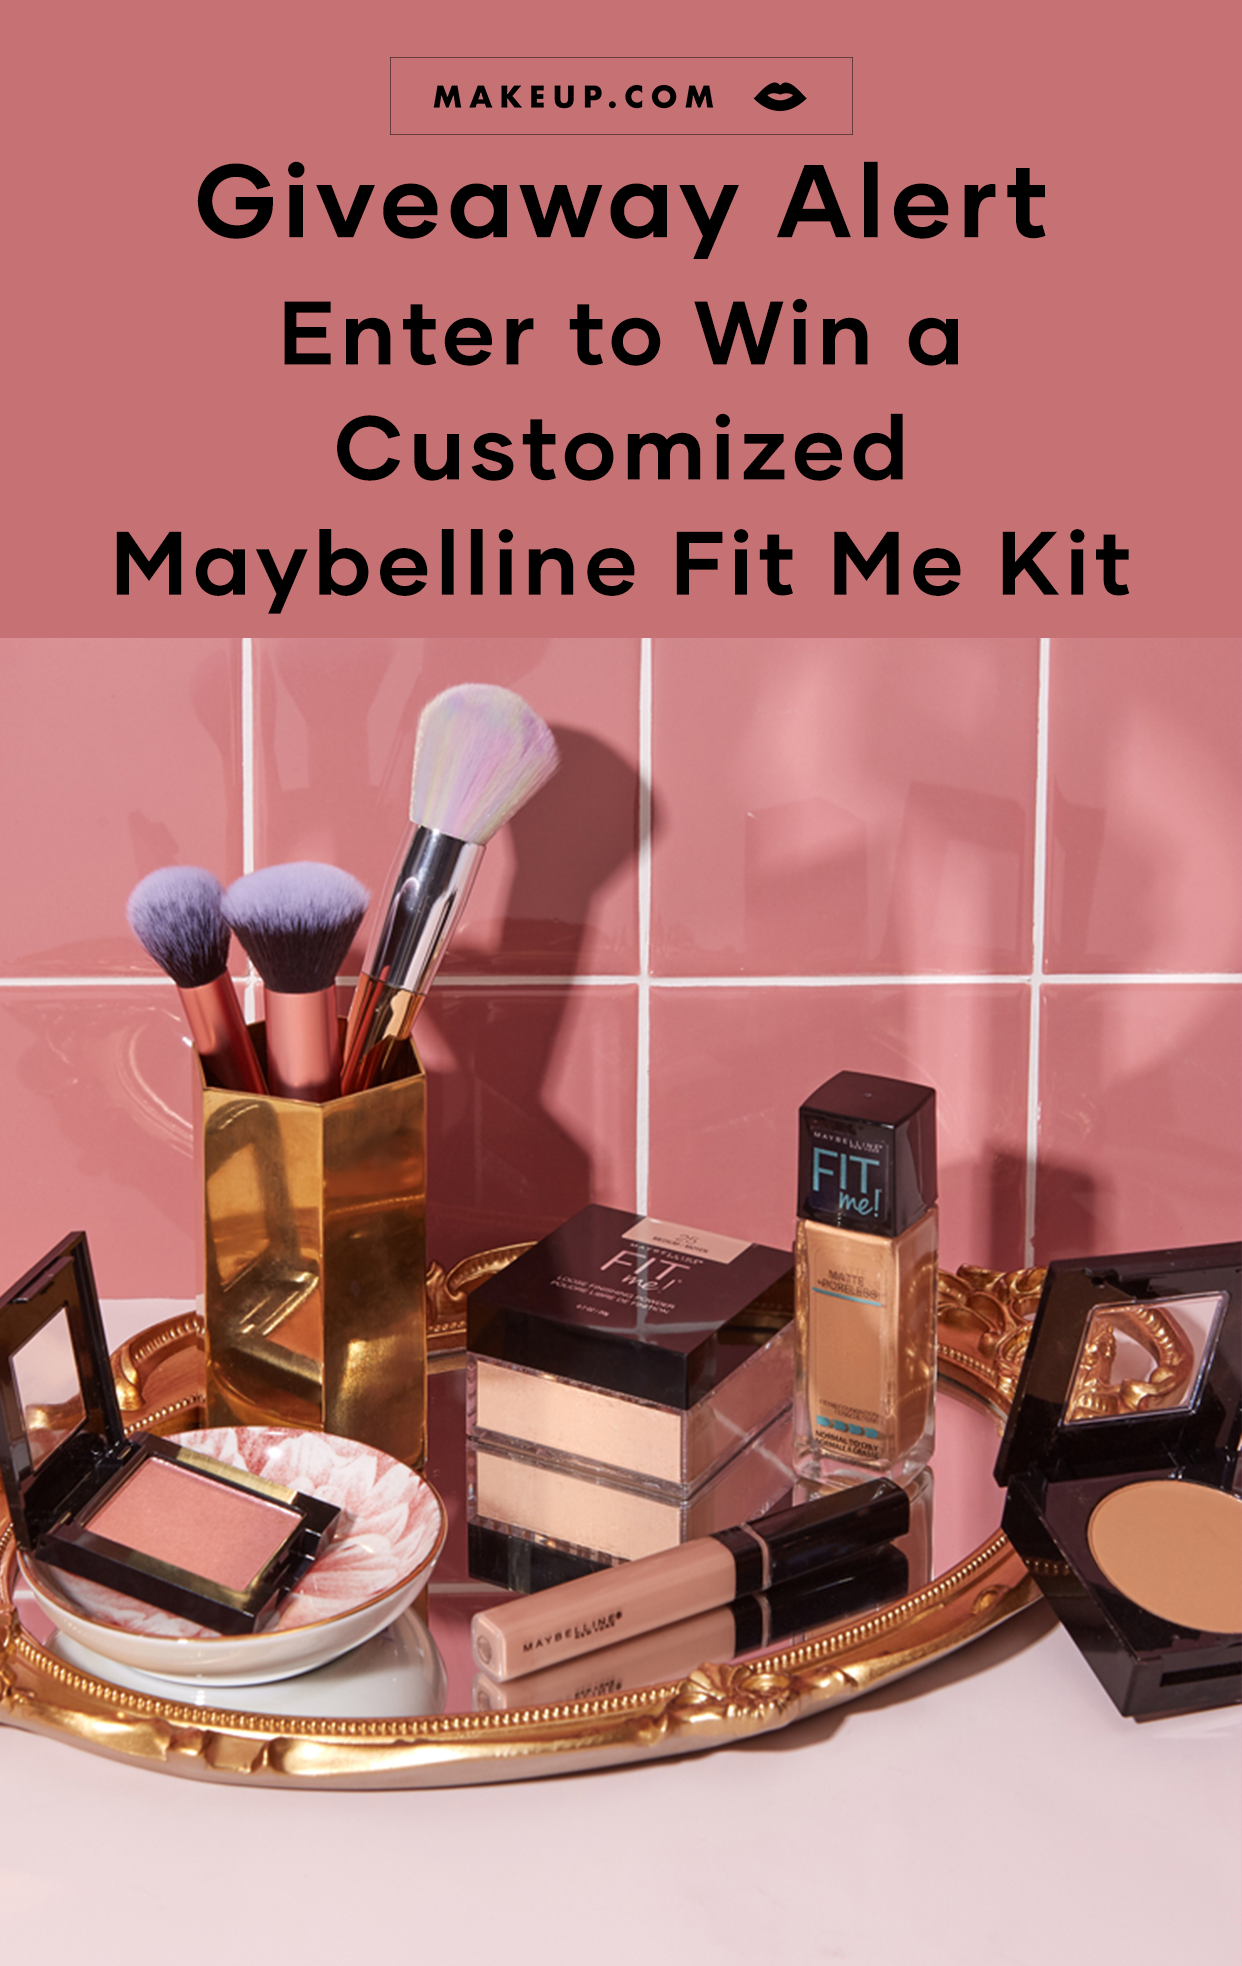 Maybelline New York Fit Me Kit Giveaway 2019 Makeup Com By L Oreal Maybelline Beauty Products Drugstore Free Skin Care Products